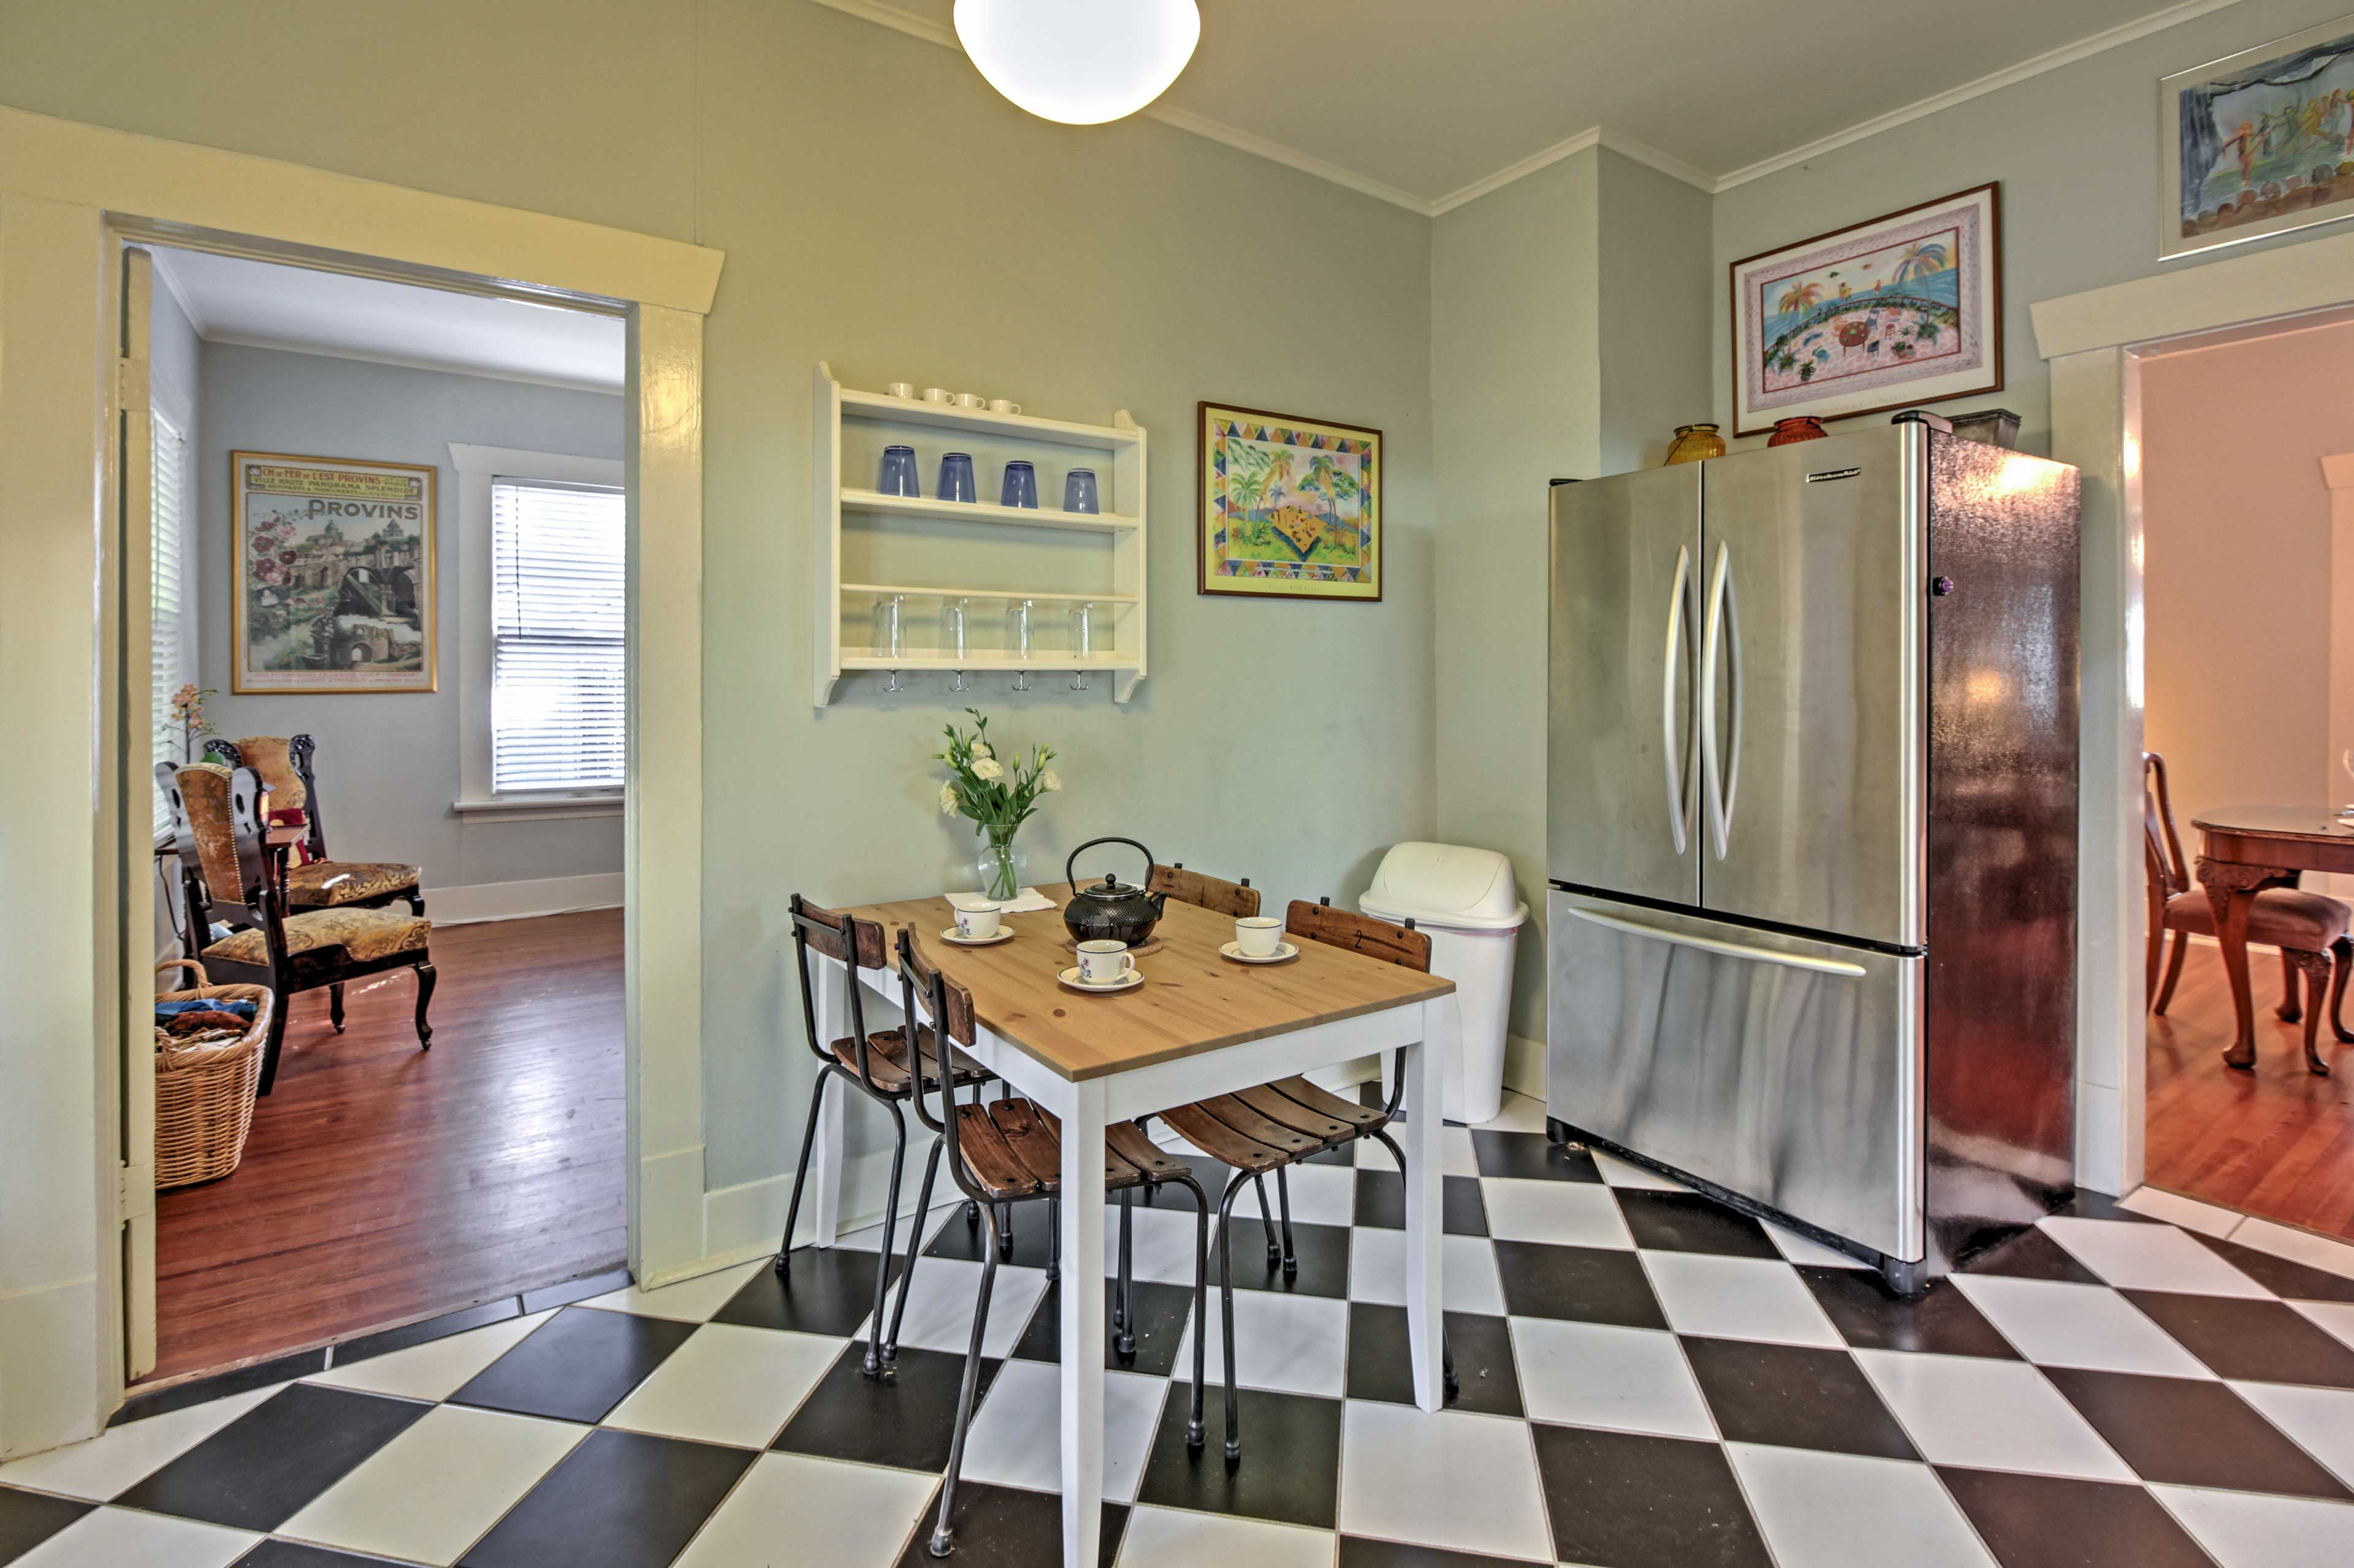 Sip your morning coffee at the quaint kitchen table while breakfast is made.